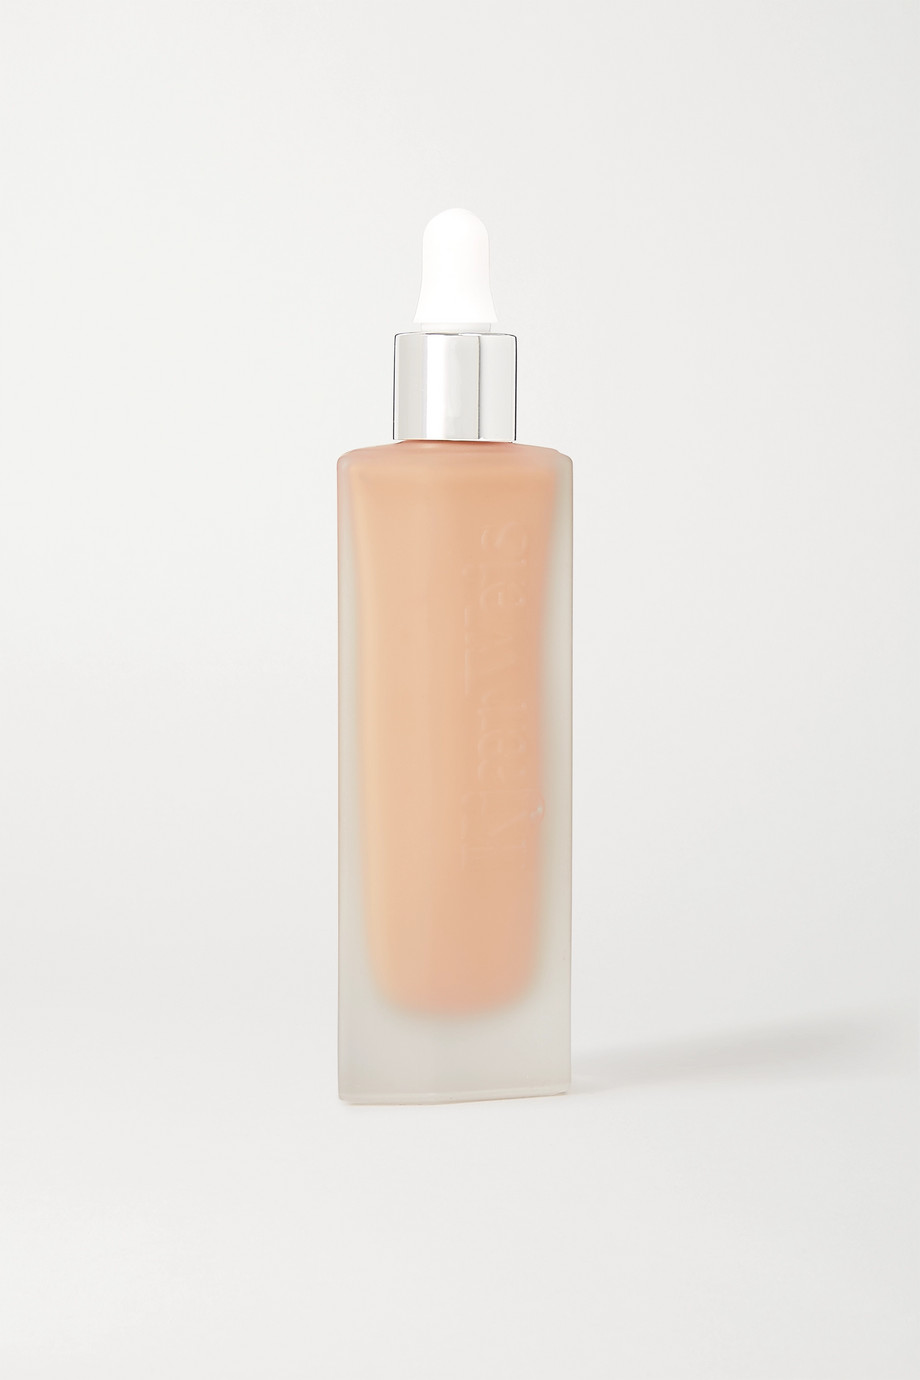 Kjaer Weis Invisible Touch Liquid Foundation - Ethereal F136, 30ml